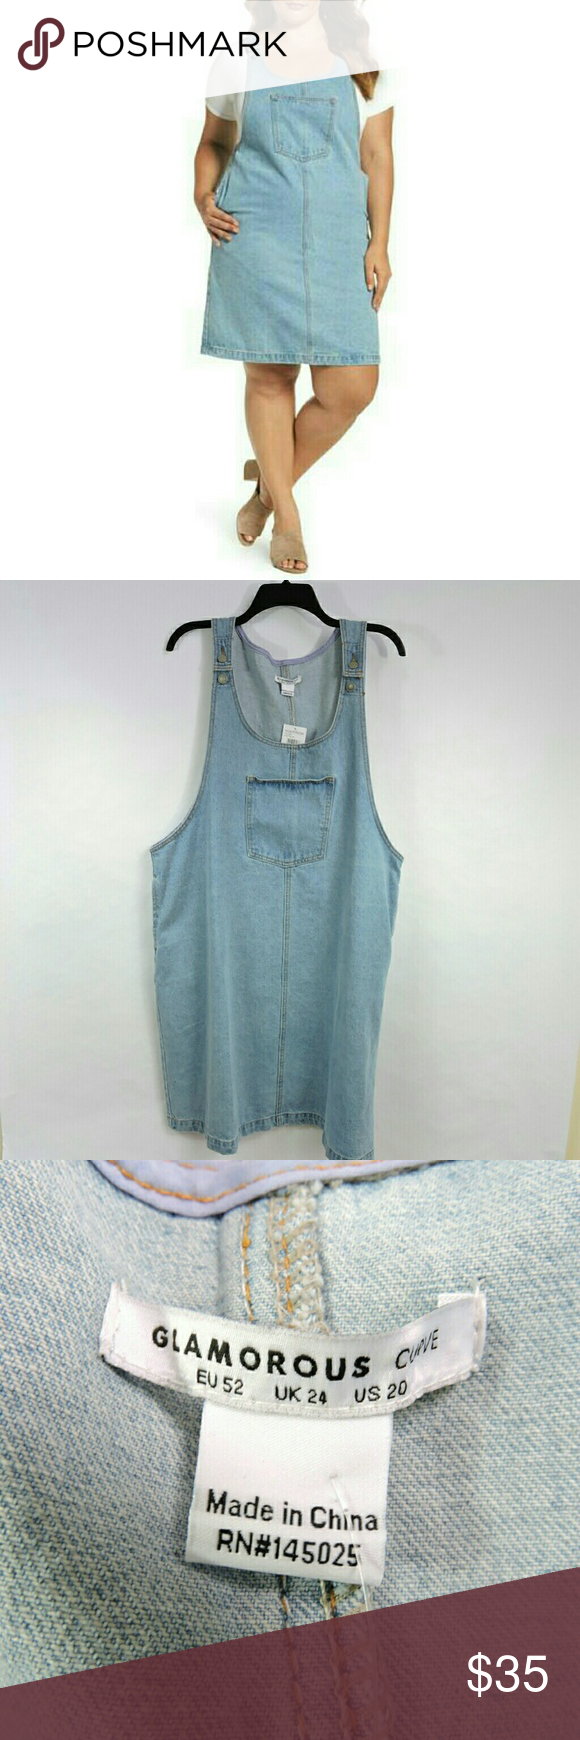 65c21b6978 Glamorous Curve Denim Plus Size Jumper Dress Perfect for summer. This jumper  is in nice condition and comes from a smoke free home.